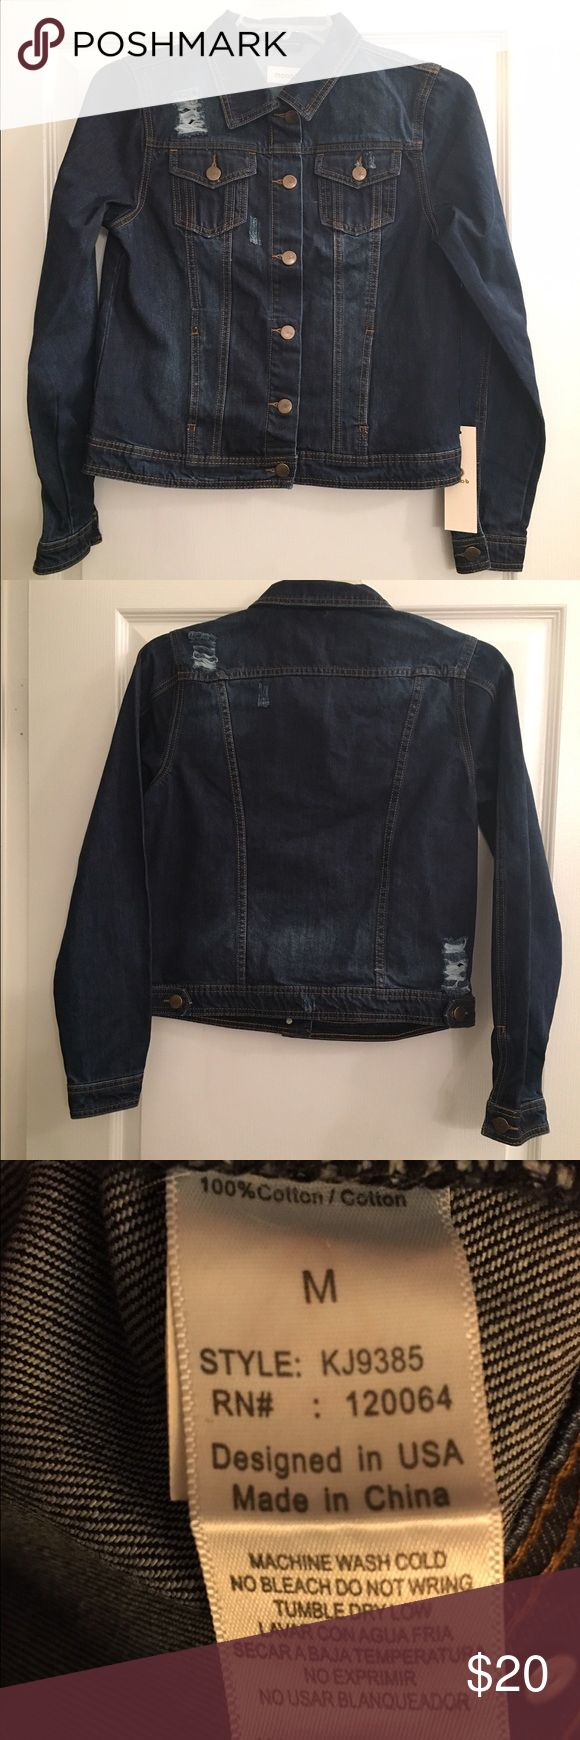 "Ladies Denim Jacket - NWT - Sz M Distressed Ladies Denim Jacket - NEw with tags - Sz M. Dark blue. Bust is 36"" waist 35"" hips 35"". Jackets & Coats Jean Jackets"